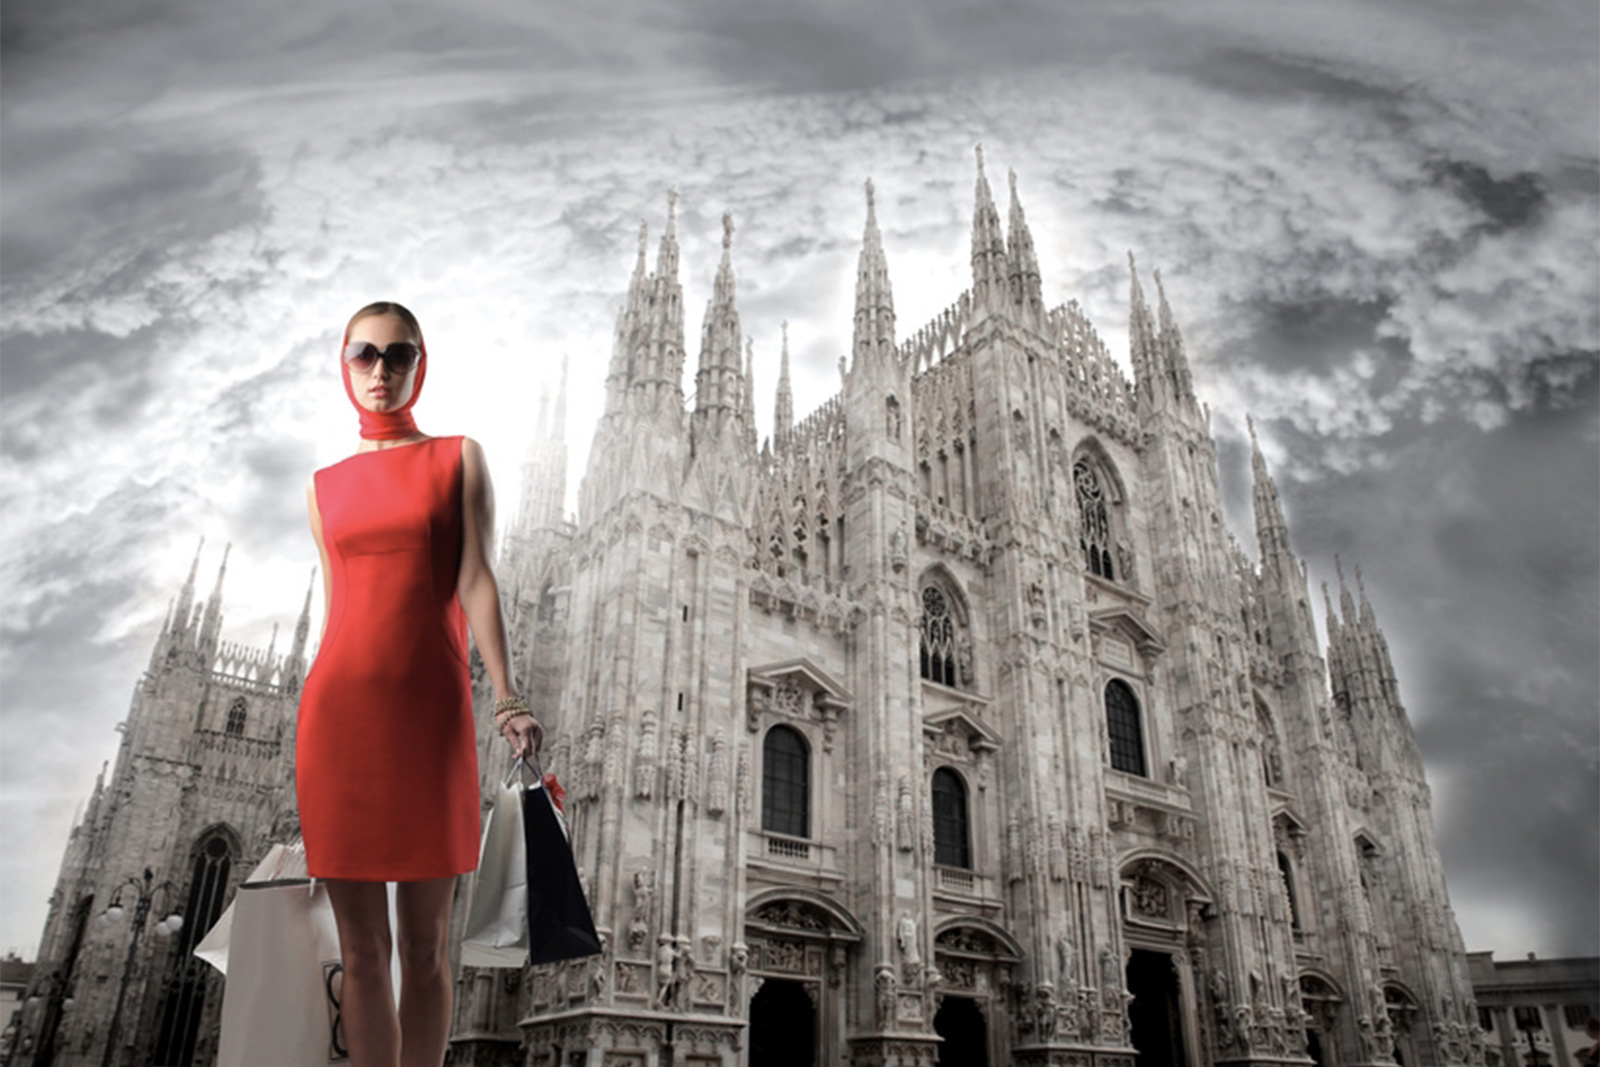 Fashion & Food: Milan and Italian Lake Experience 7-day